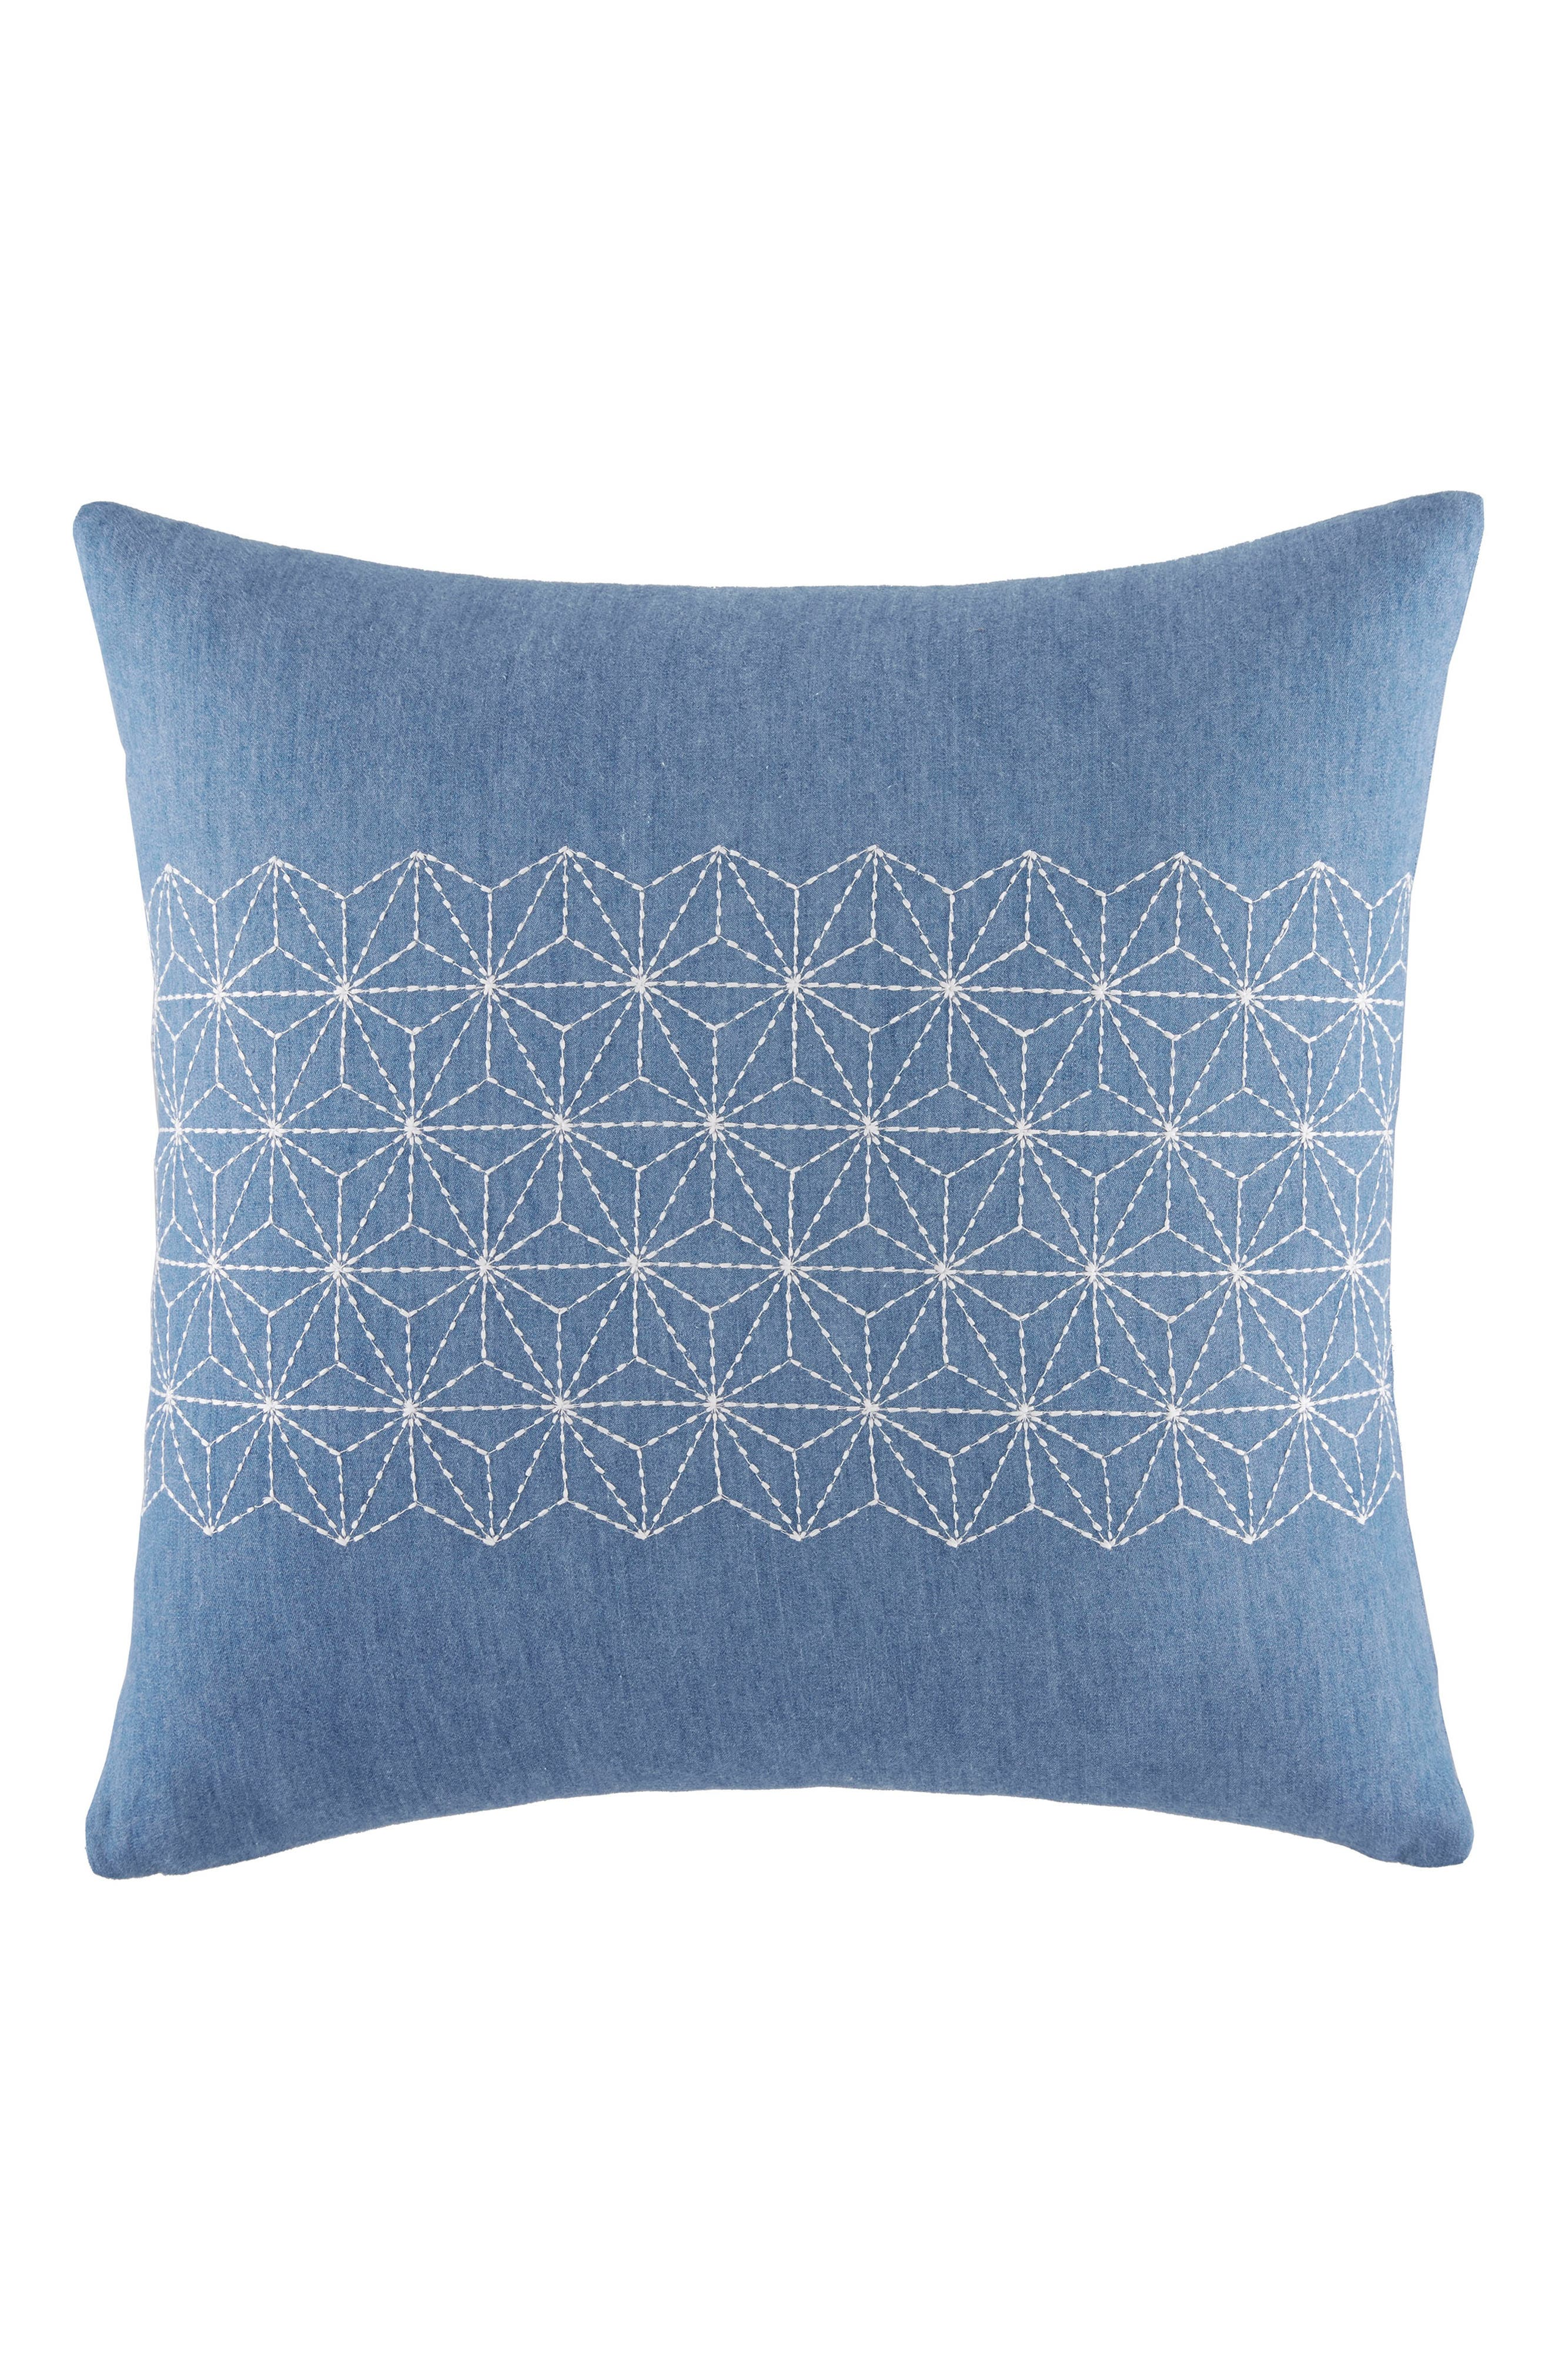 Geo Stitched Accent Pillow,                             Main thumbnail 1, color,                             400